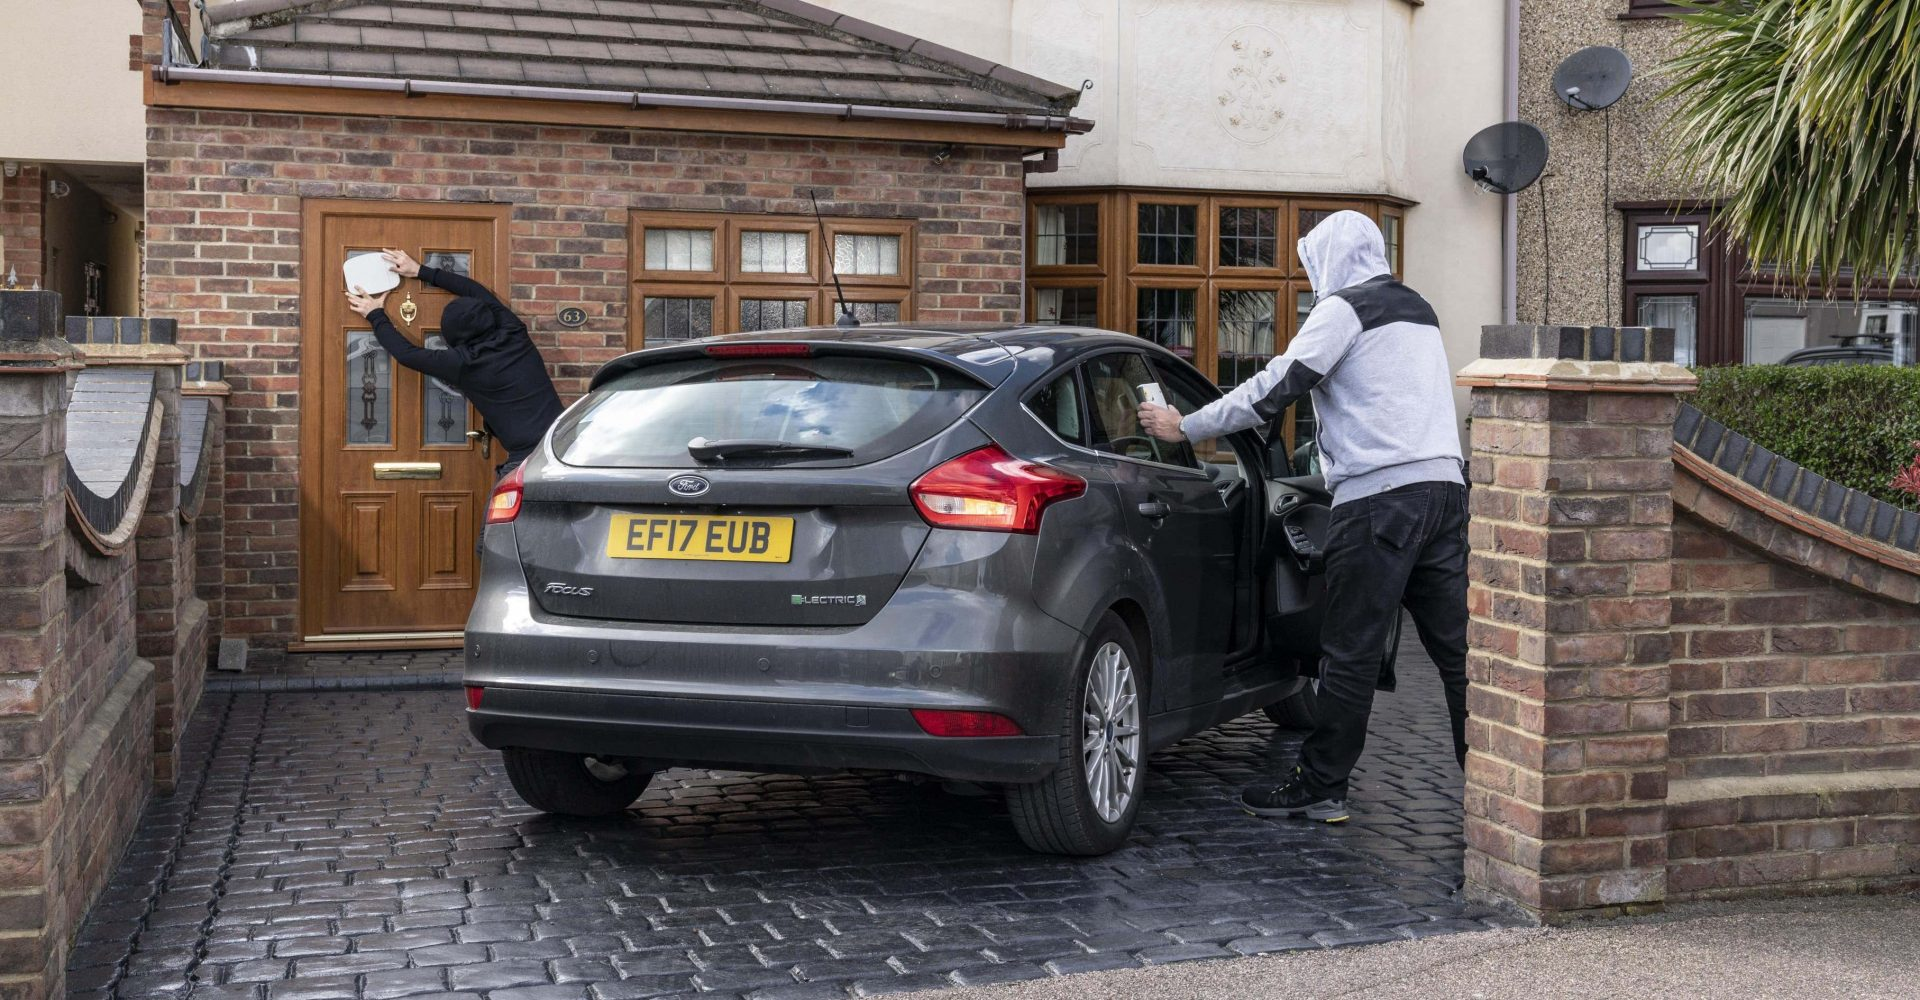 Keyless car technology fuels rise in car theft